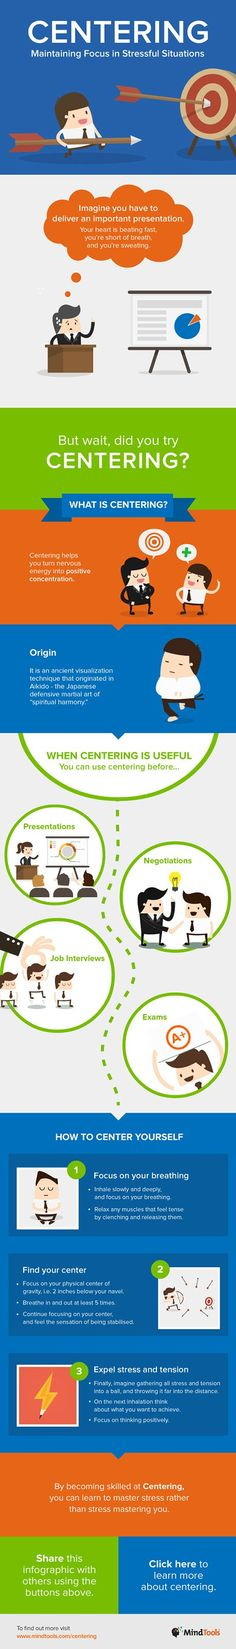 Centering Infographic